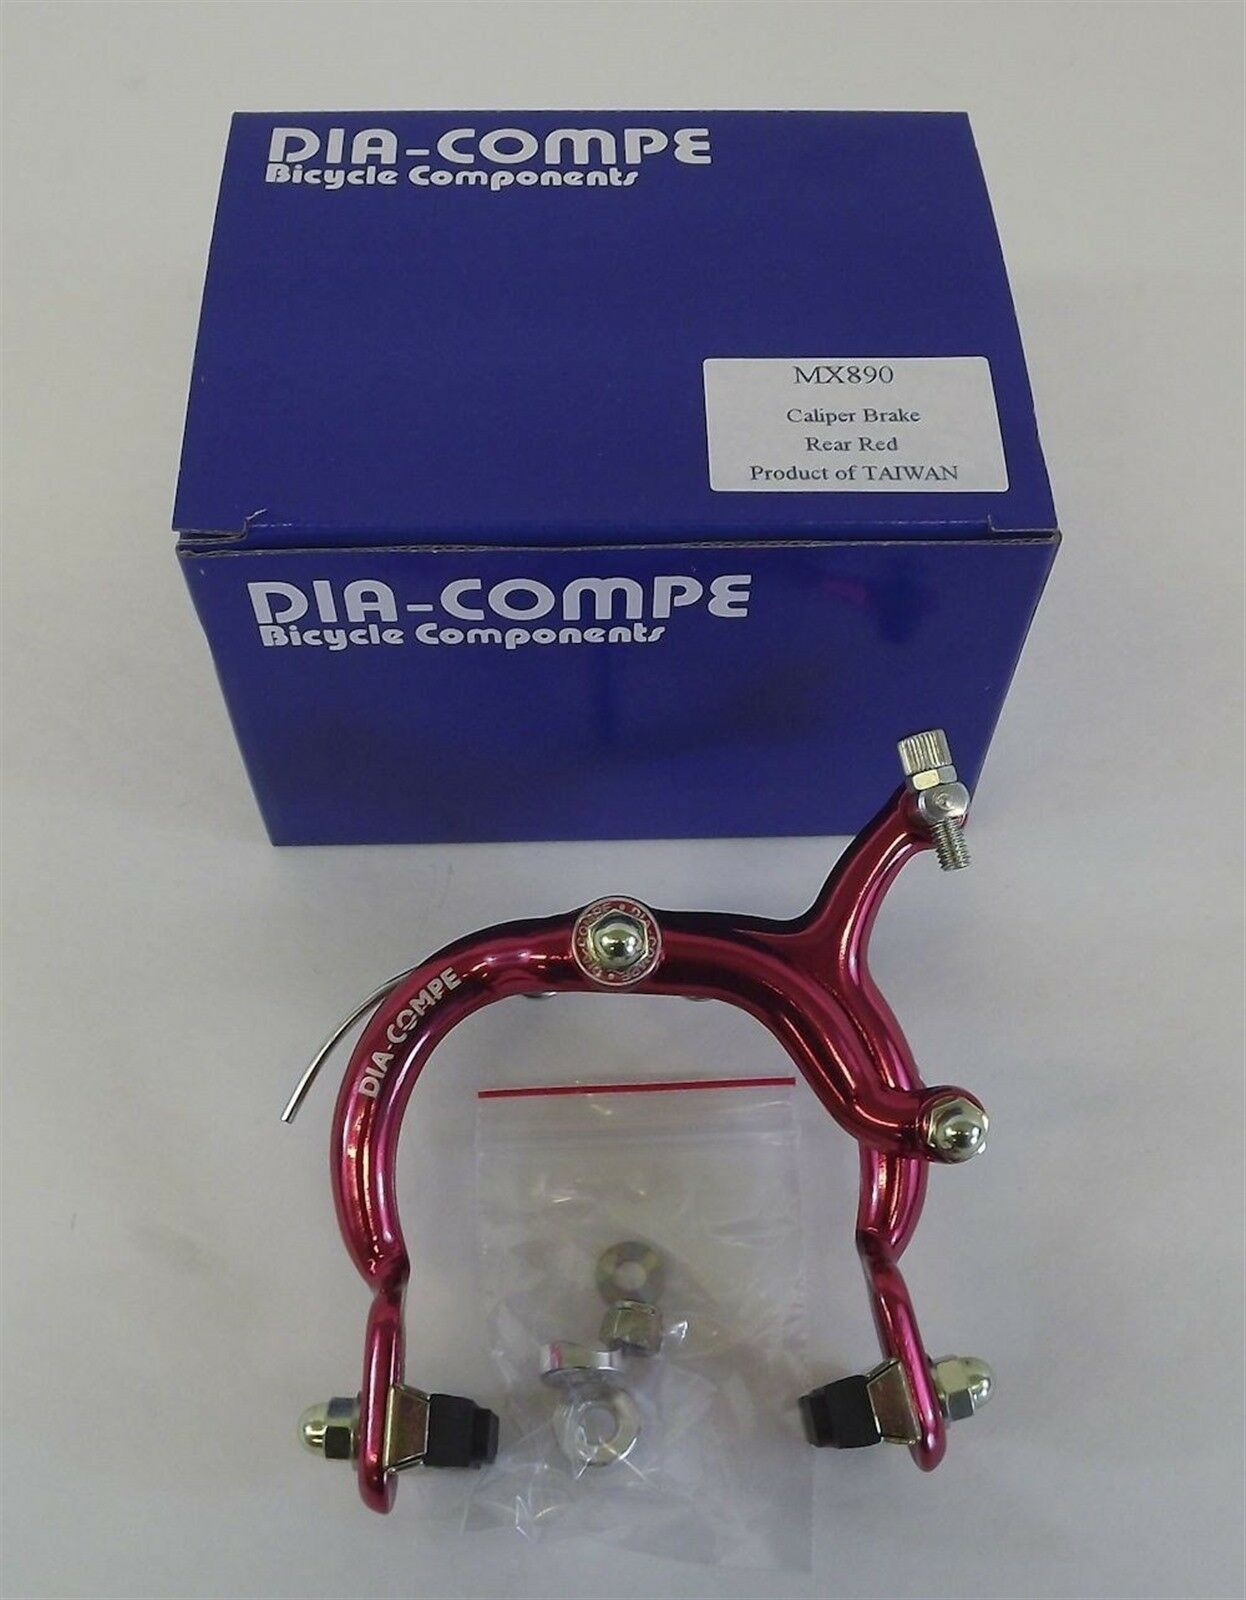 New Dia-Compe 890 Rear Brake Caliper Old School BMX Red Anodized